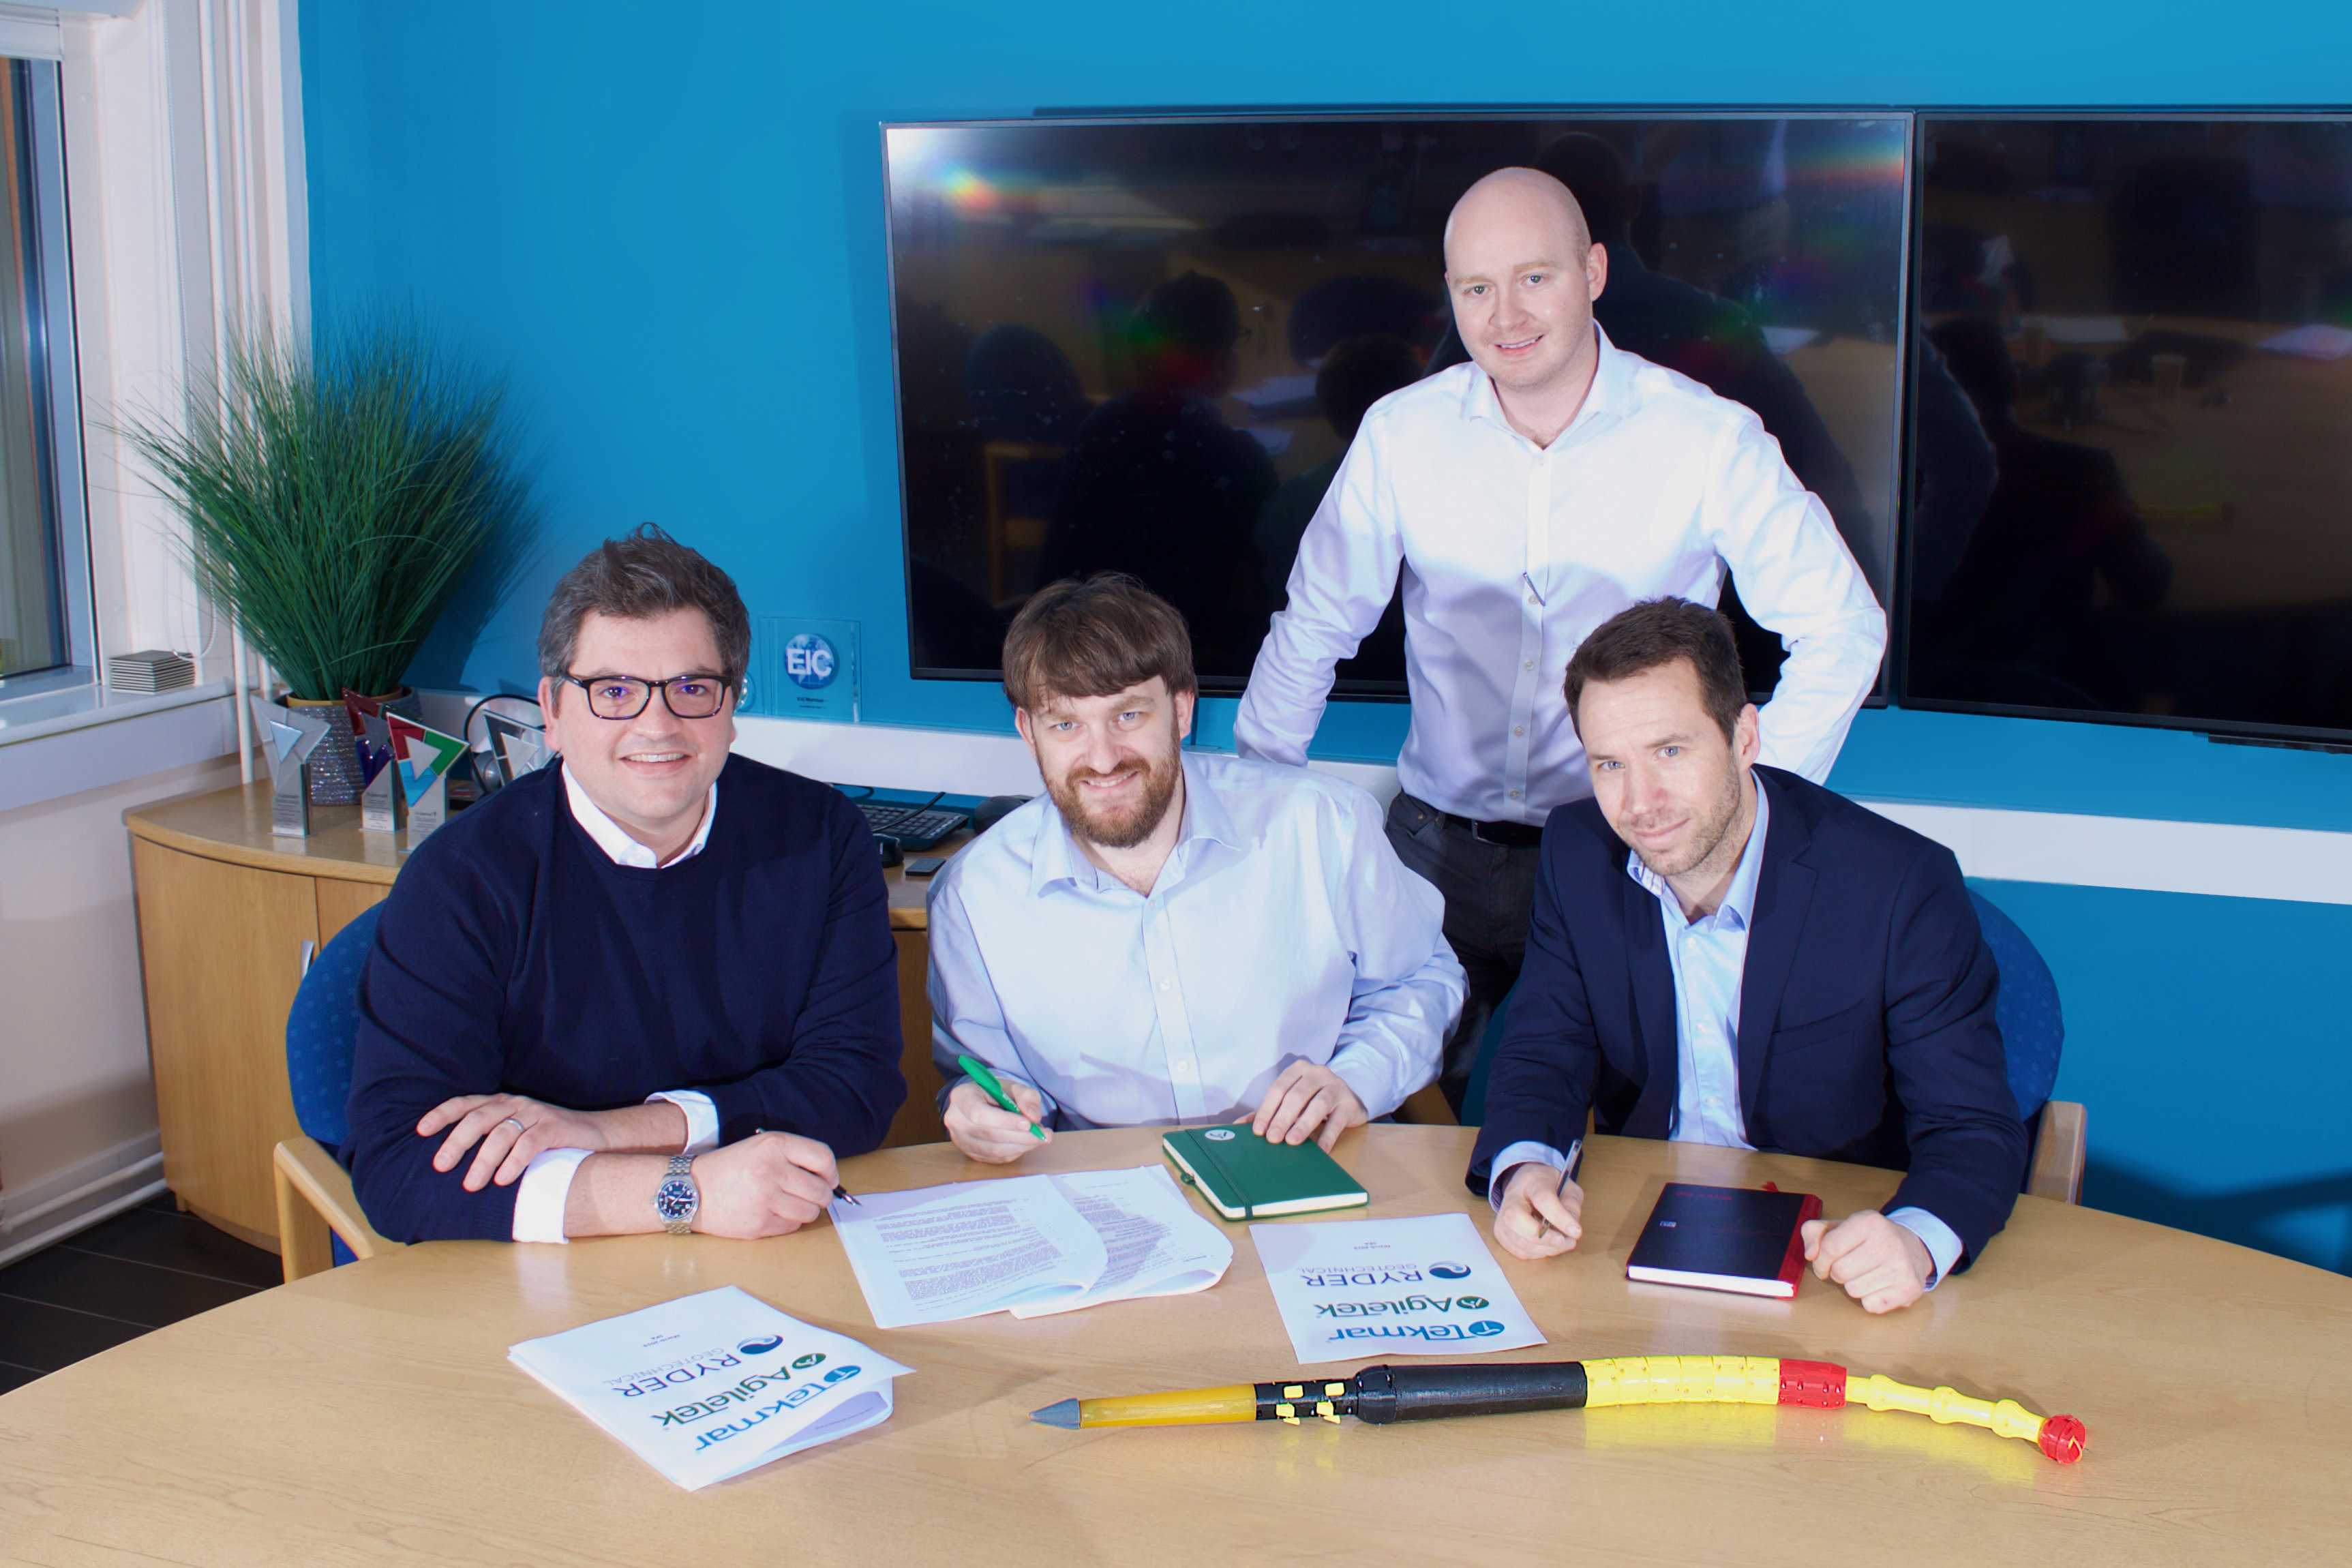 Good Deal: Pictured (L to R) are Ryder director Fraser Gibson, Agiletek managing director Steve Rossiter, Tekmar CEO James Ritchie, and Nigel Martin a fellow director at Ryder.